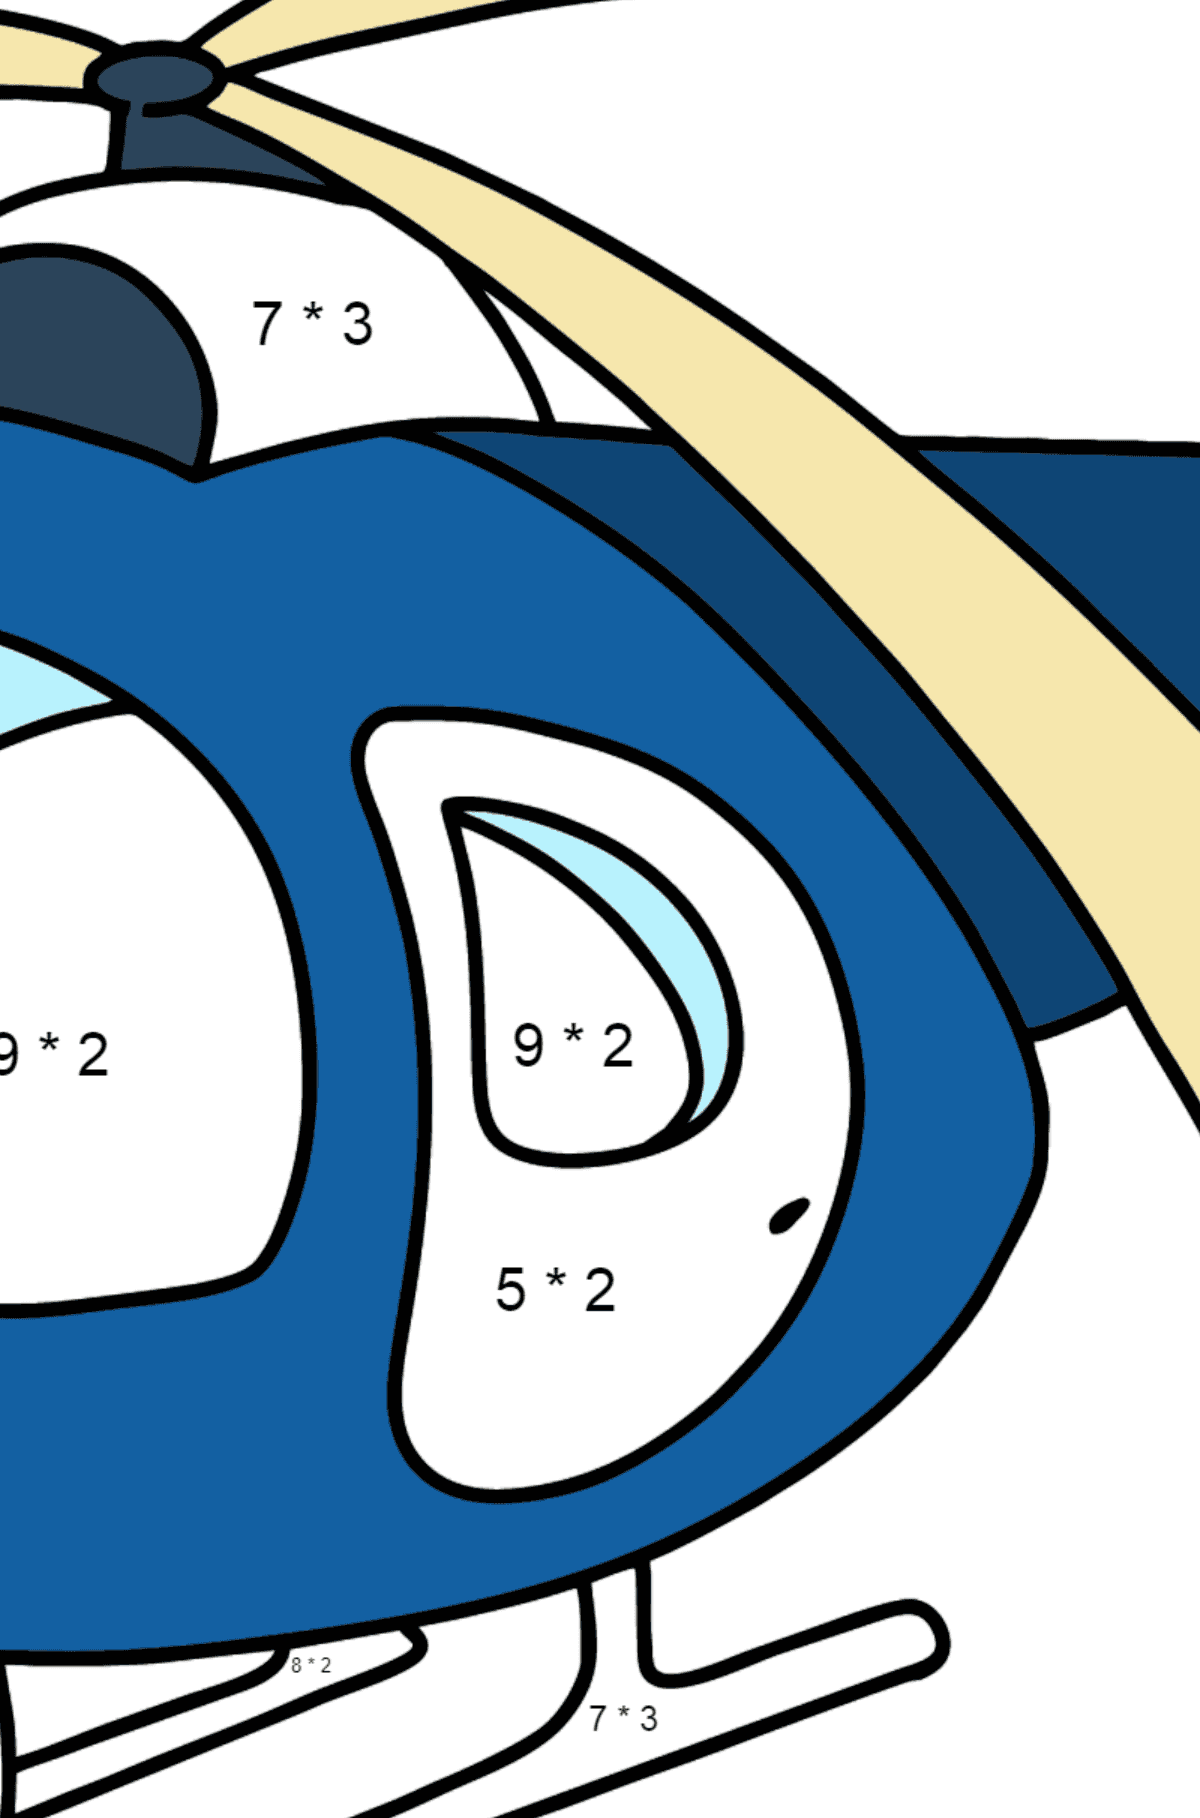 Helicopter coloring page for kids - Math Coloring - Multiplication for Kids